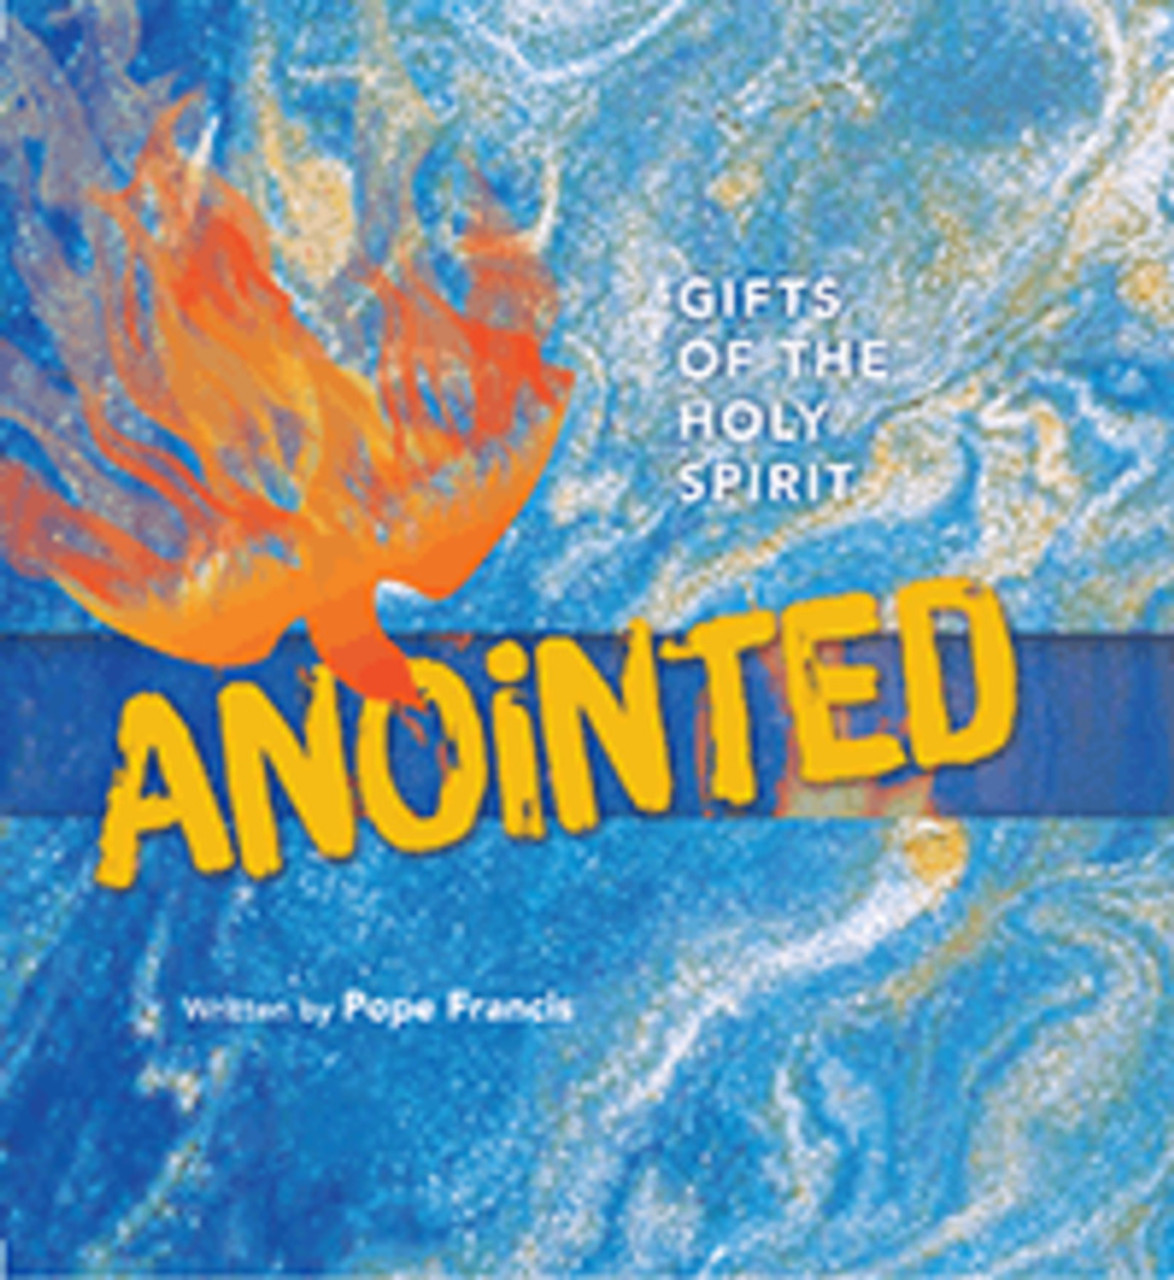 AnointedGifts of the Holy Spirit